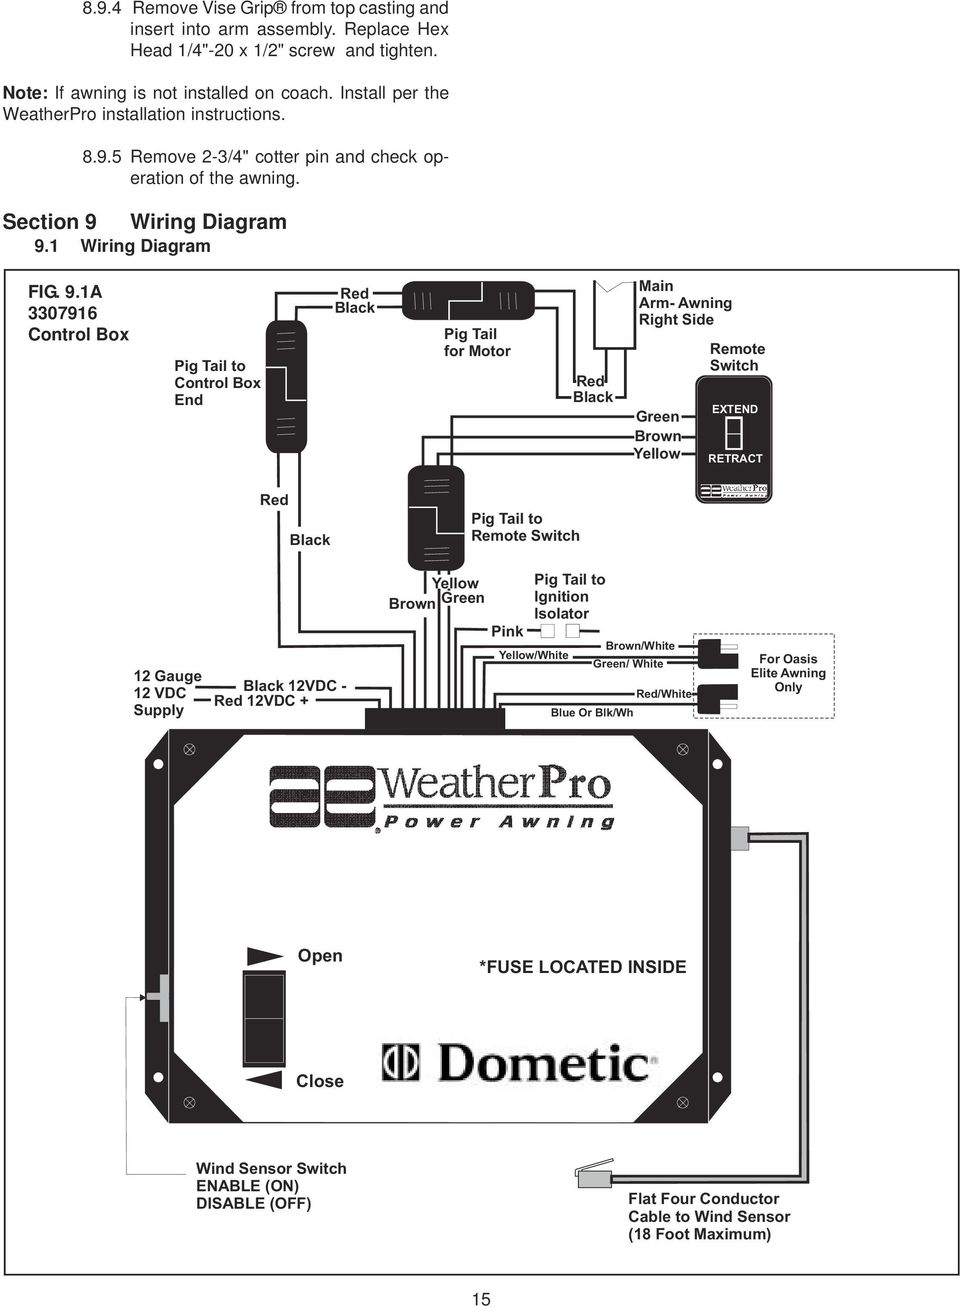 Carefree Awning Switch Wire Diagram 4 - carefree of colorado